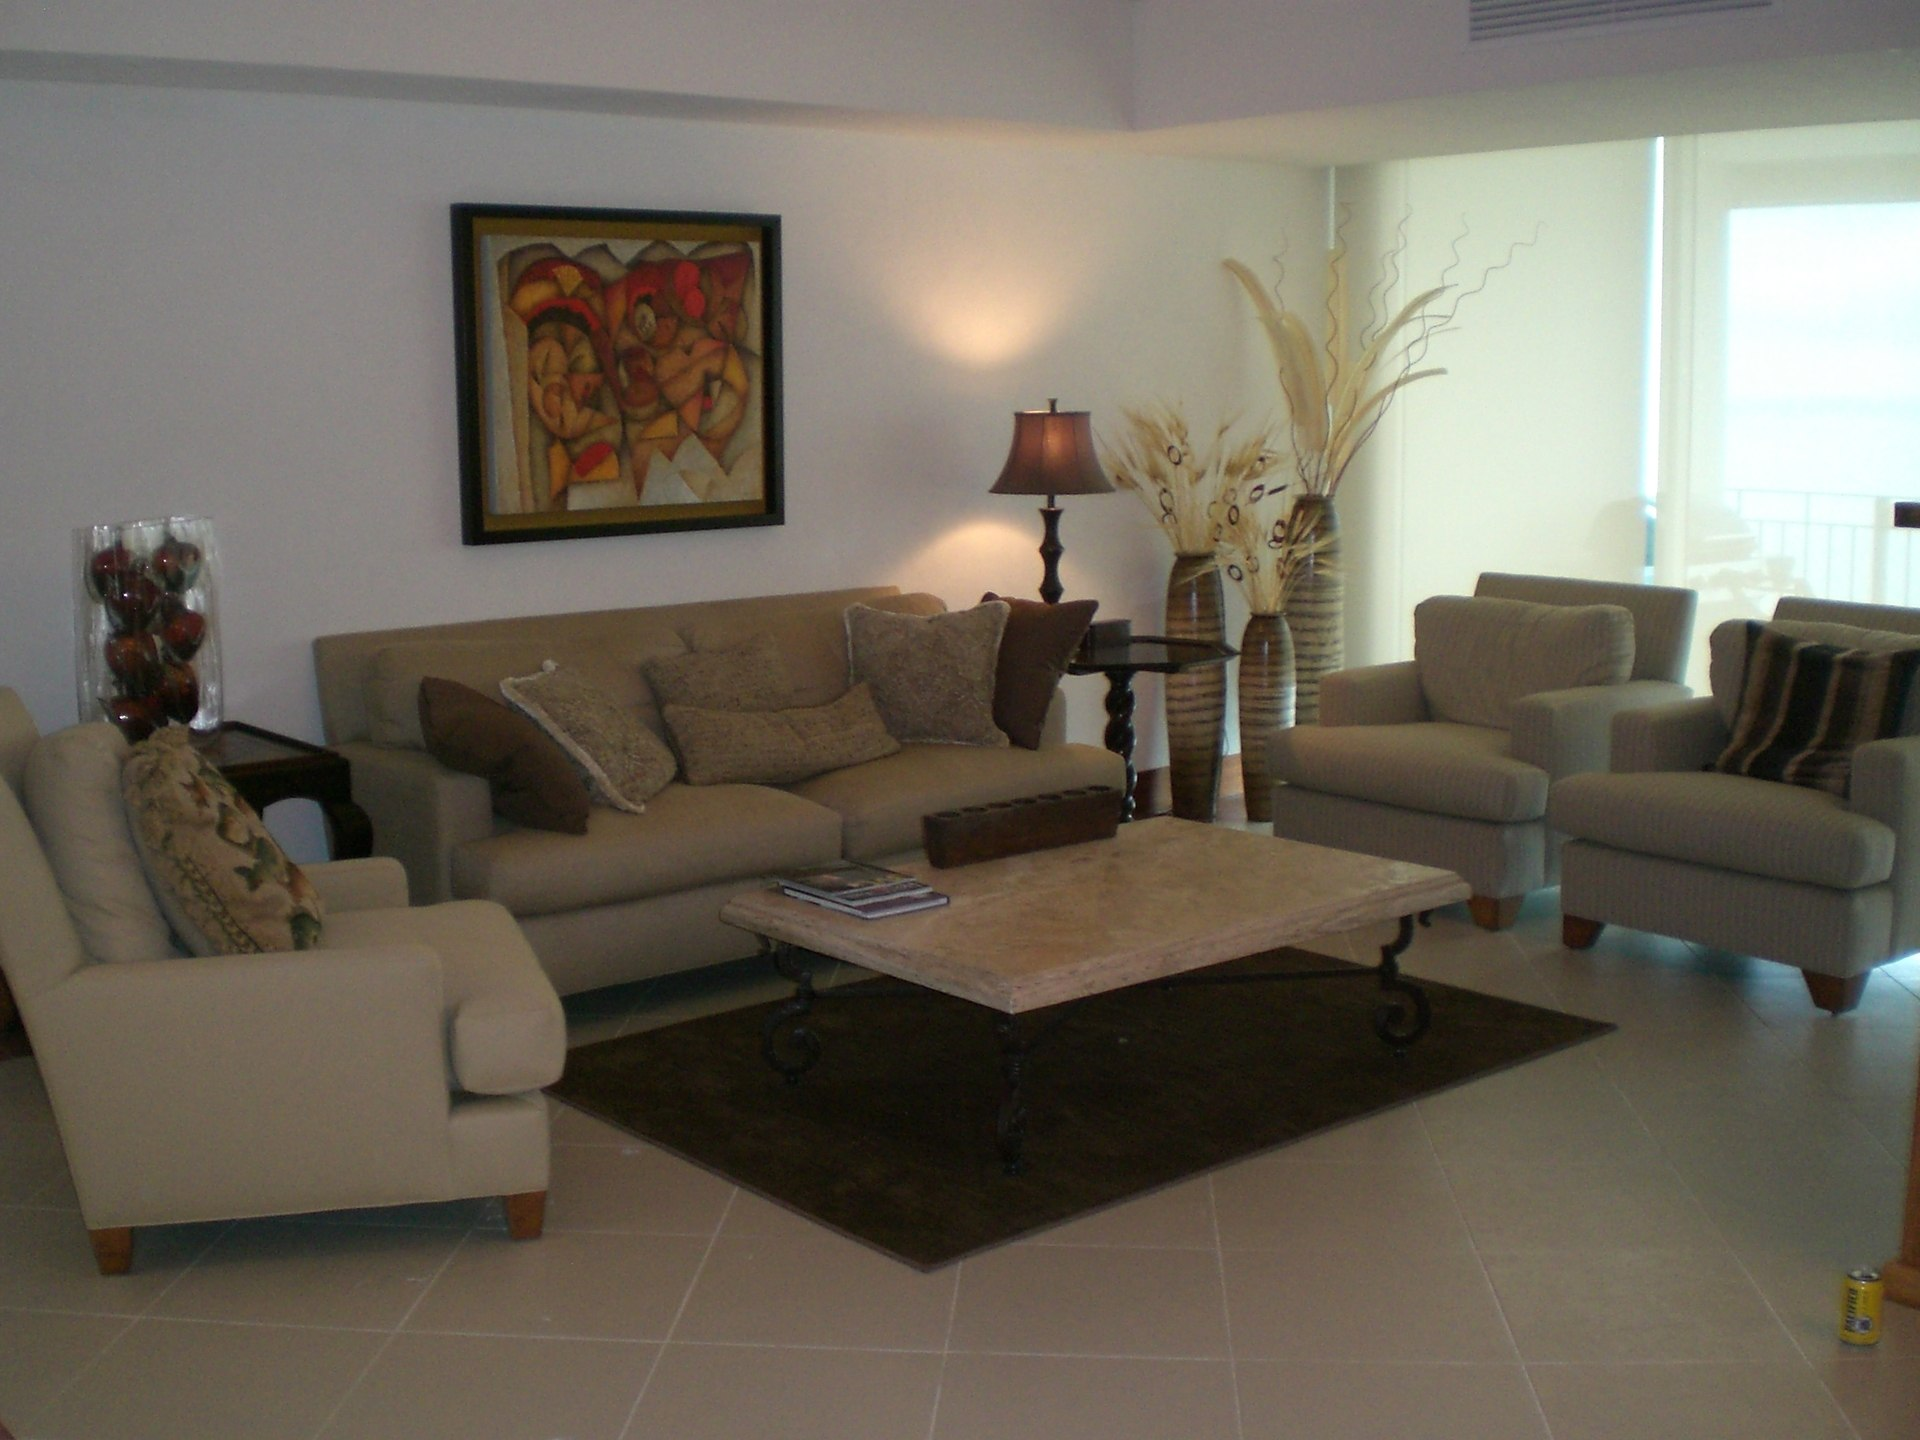 Living room and couches of 3 bedroom vacation condo for rent in Grand Venetian Puerto Vallarta